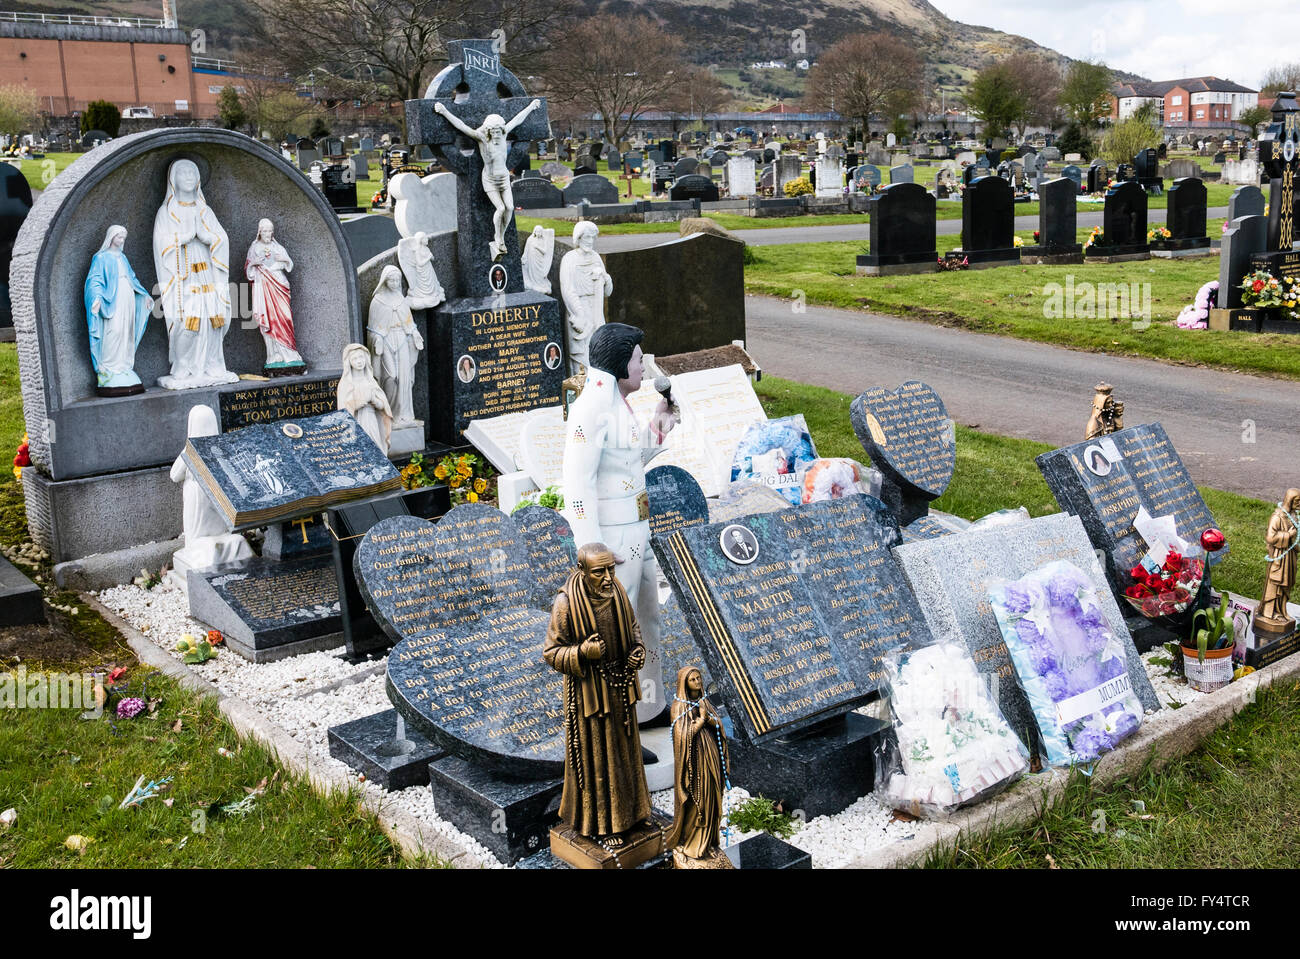 A large number of marble memorial stones on a grave in an Irish graveyard, including a large statue of Elvis Presley. Stock Photo